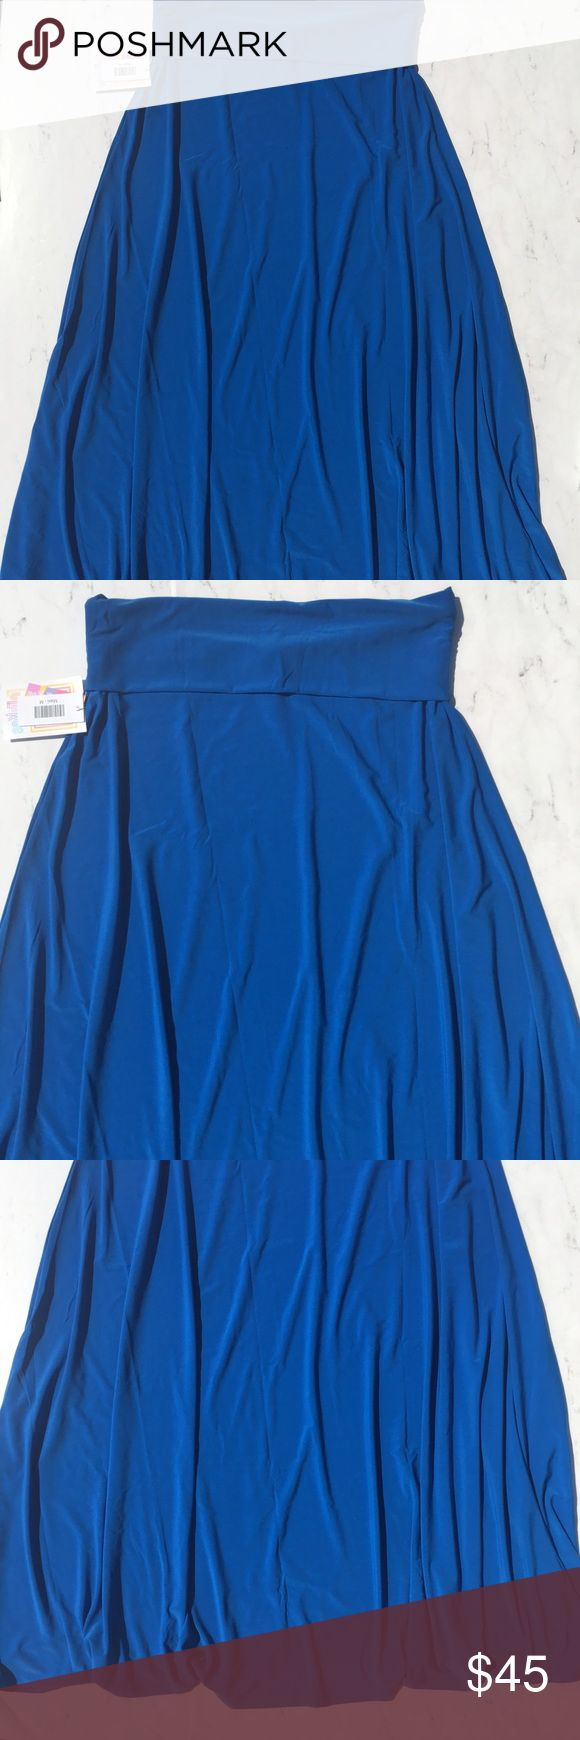 New LulaRoe Maxi Skirt Size Medium Blue This is a LuLaRoe Maxi Skirt • Size: Medium • Color: Blue • New With Tags MSRP $52 • Stretch • A-line and long skirt • Waist be folded down or not • Very versatile skirt • Machine wash • Made in Vietnam • RN# 142161 • LuLaRoe Skirts Maxi